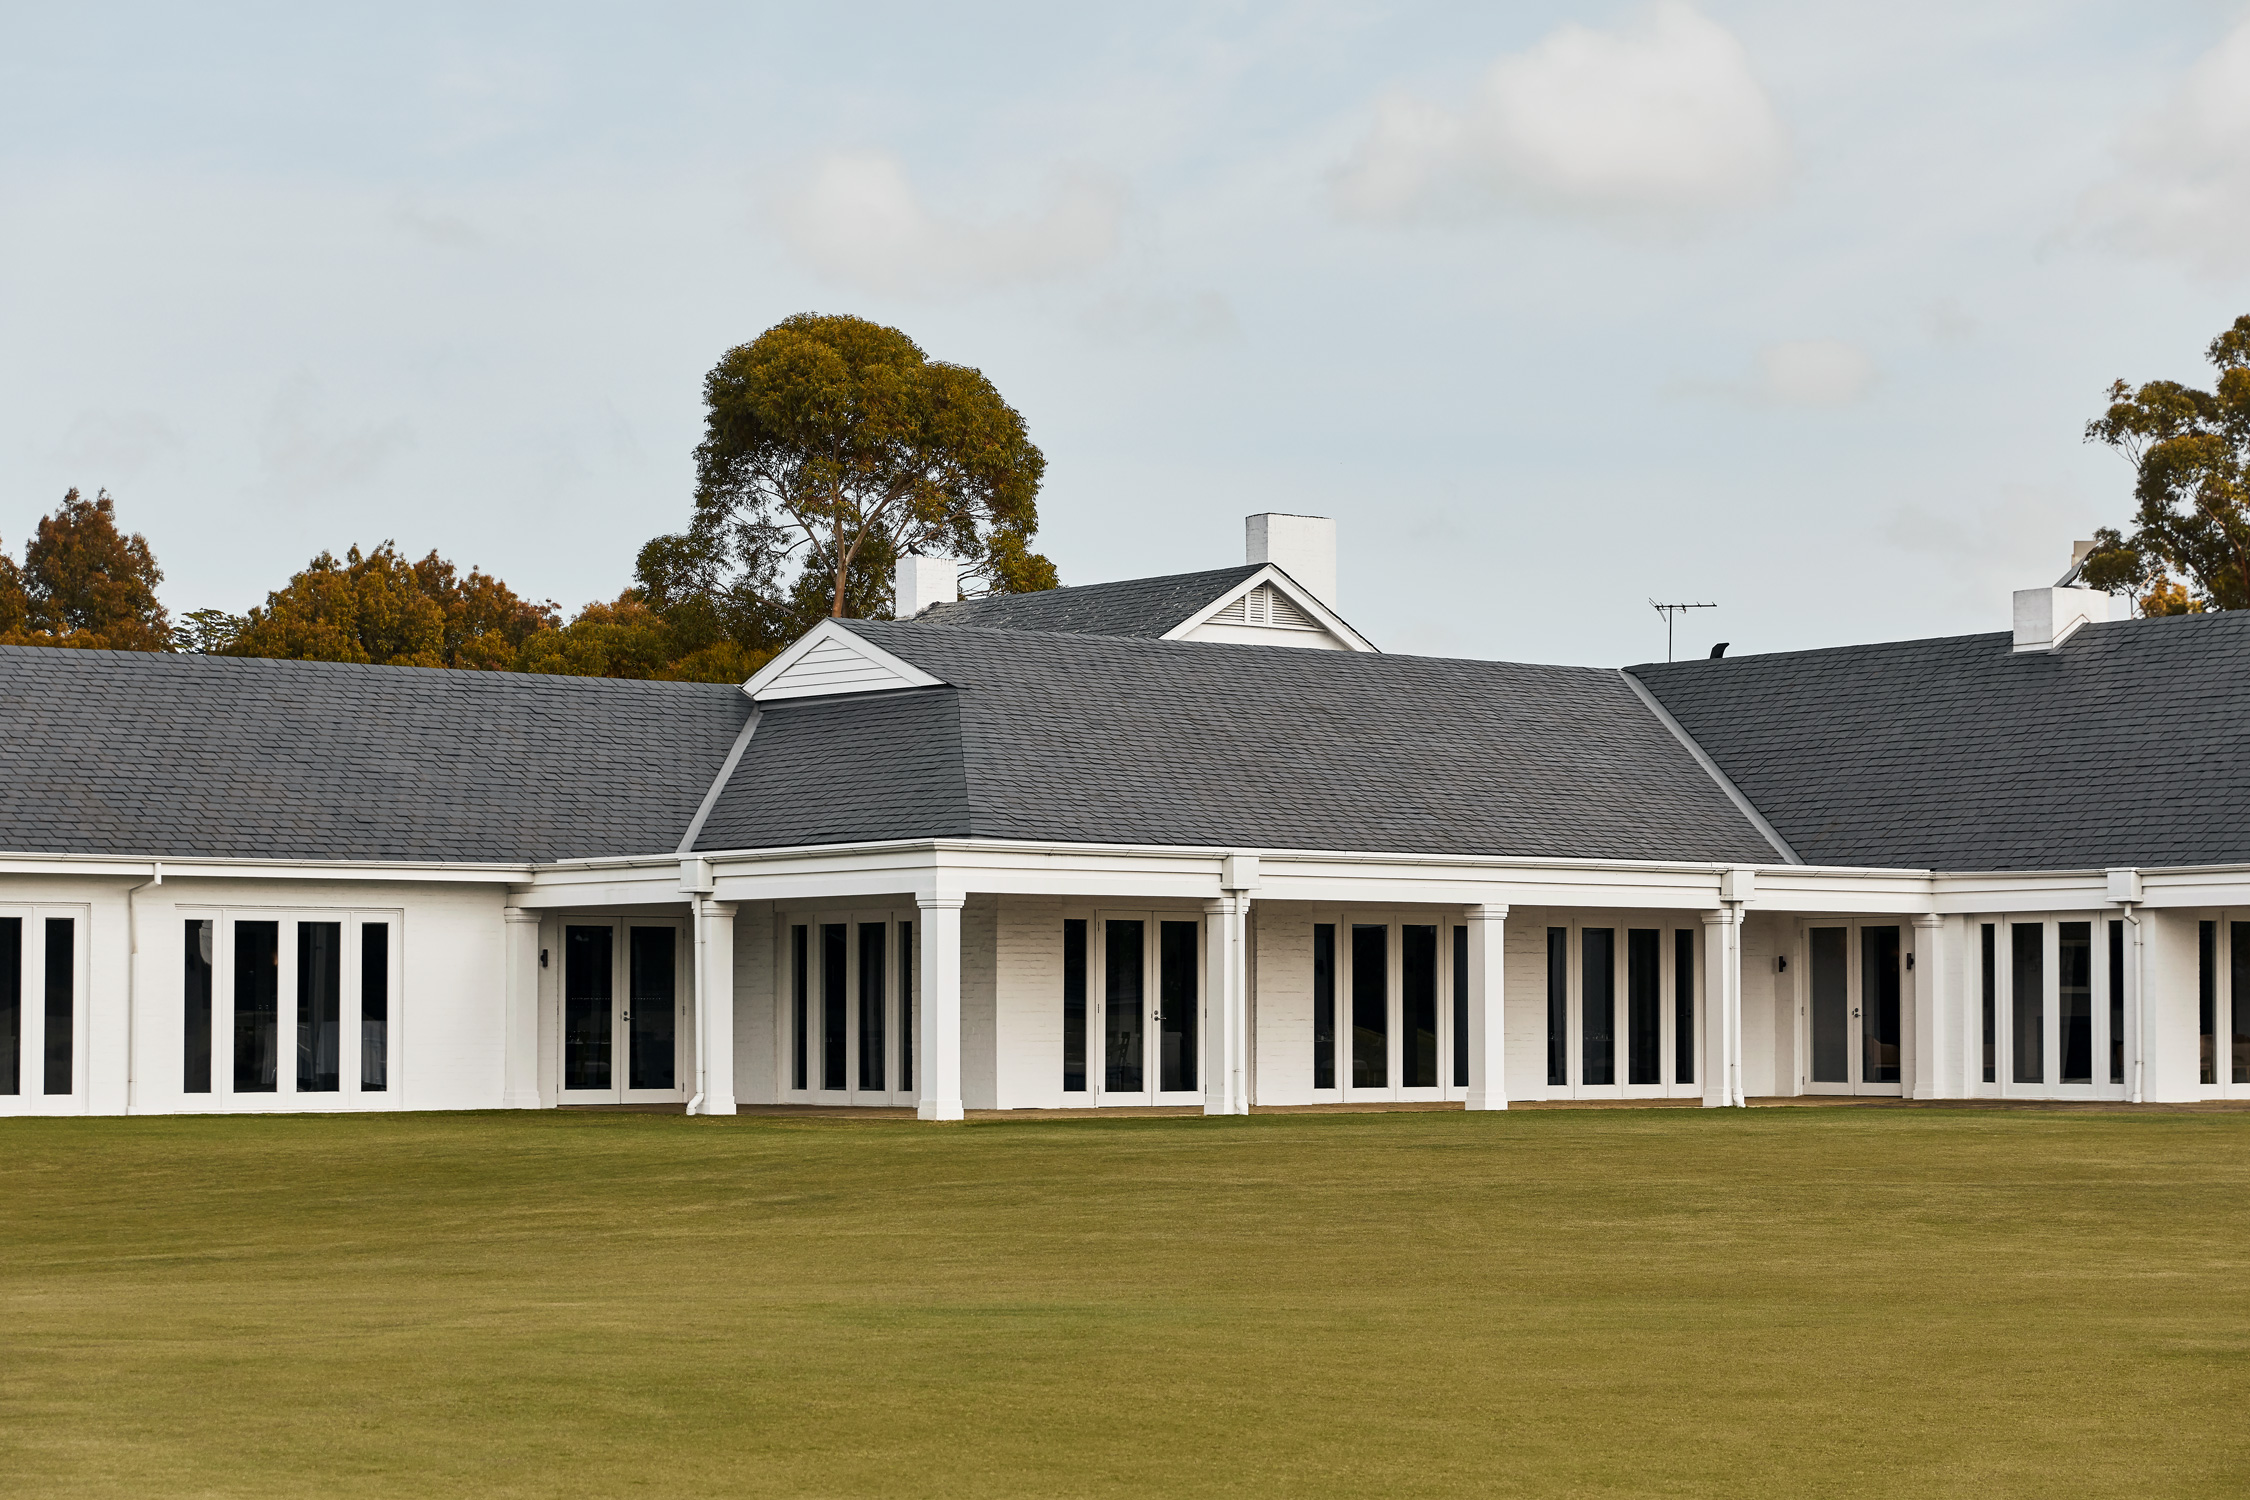 Kingston Heath Golf Club - The Golfer